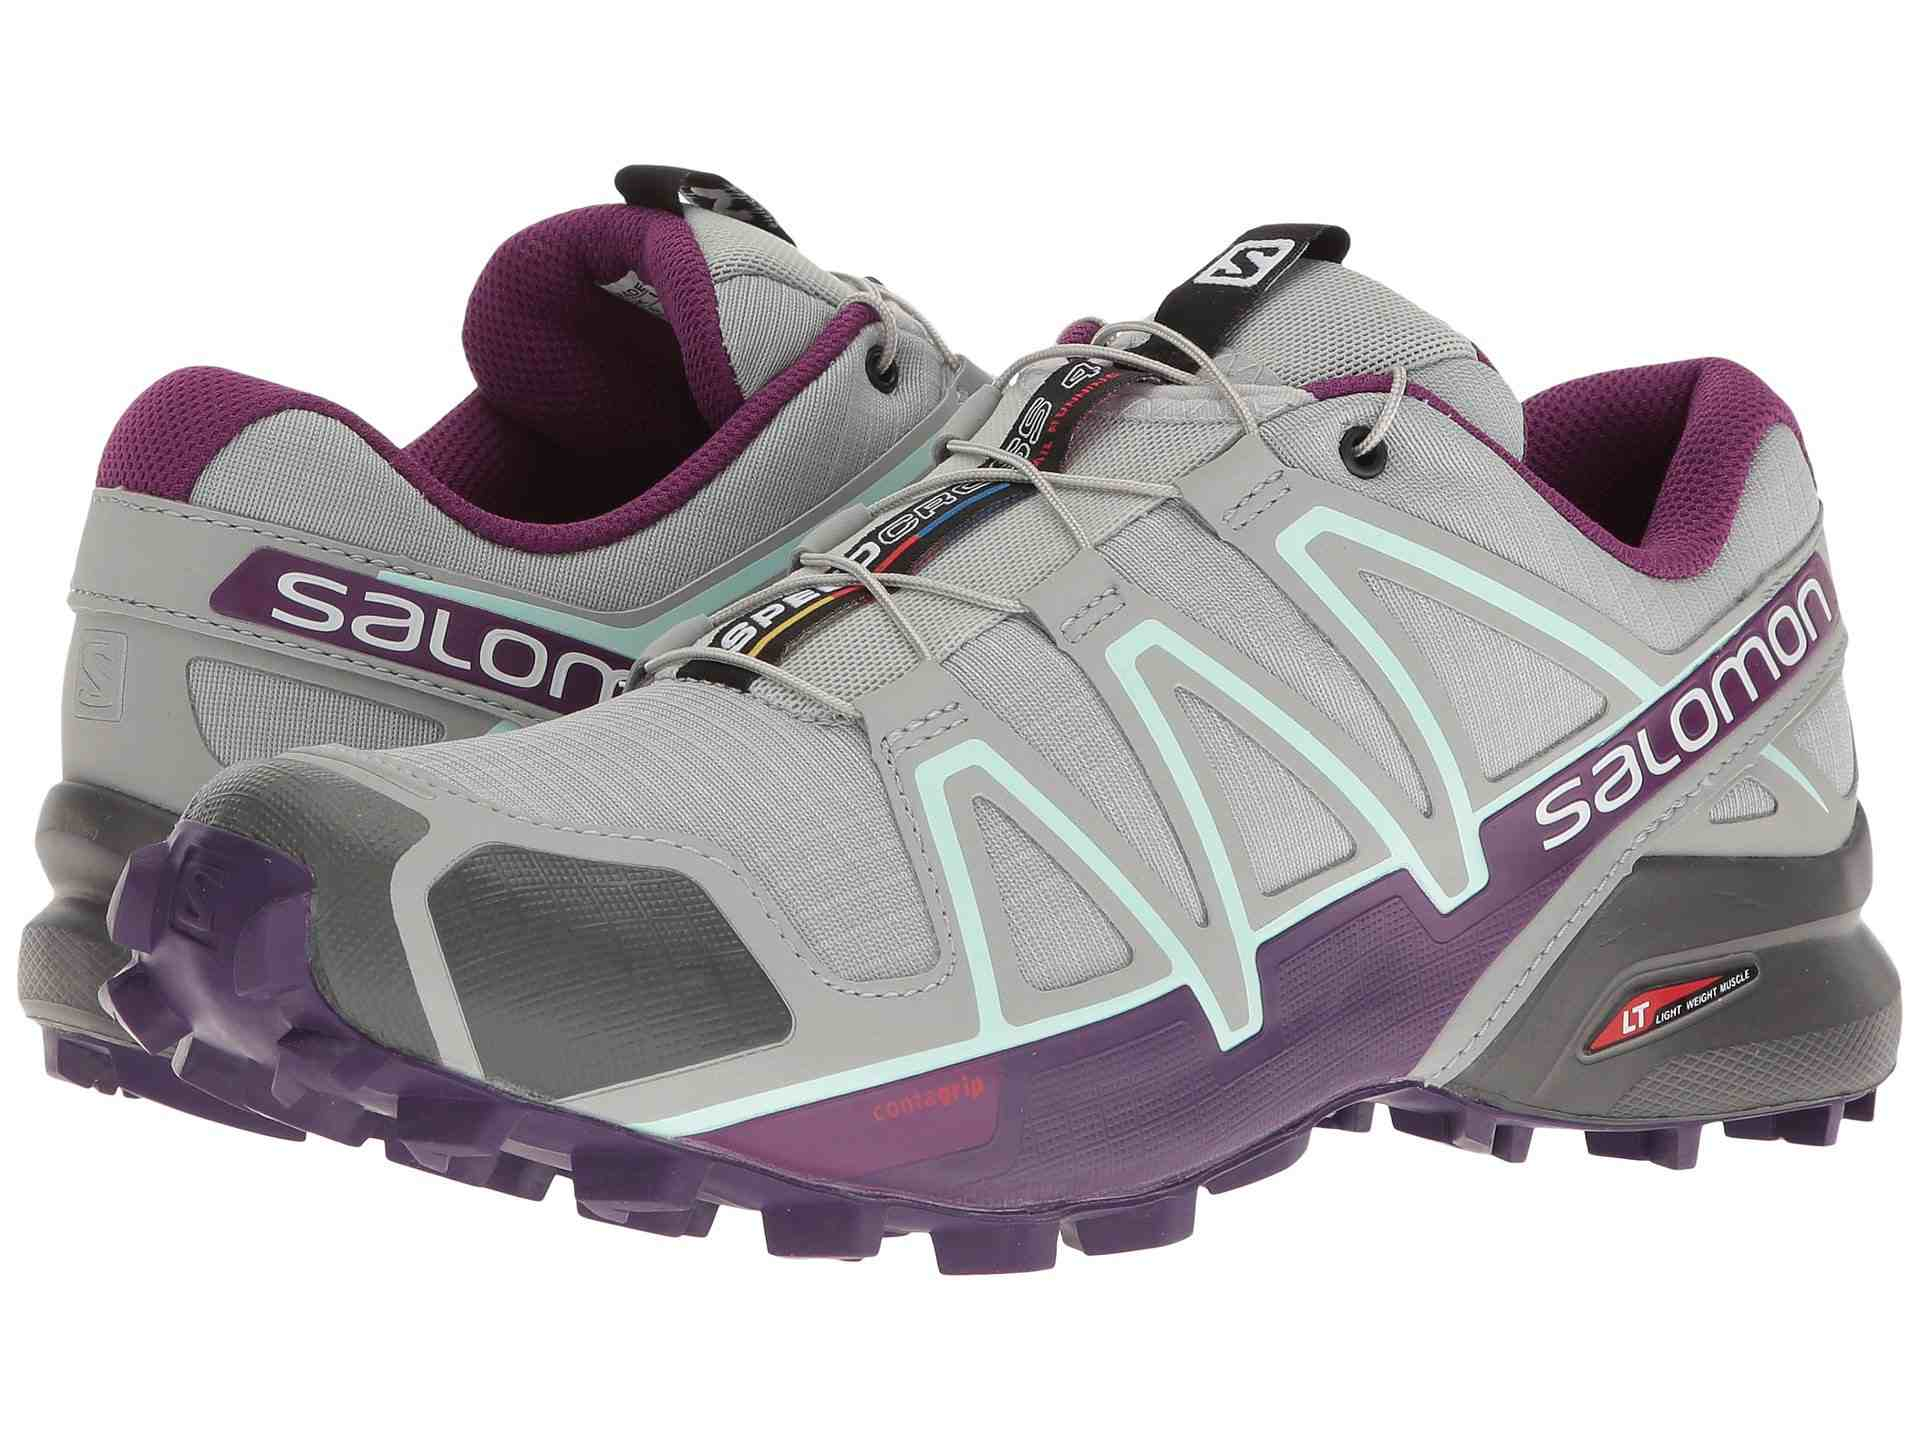 Best Splurge: Salomon Women's Speedcross 4 W Trail Runner